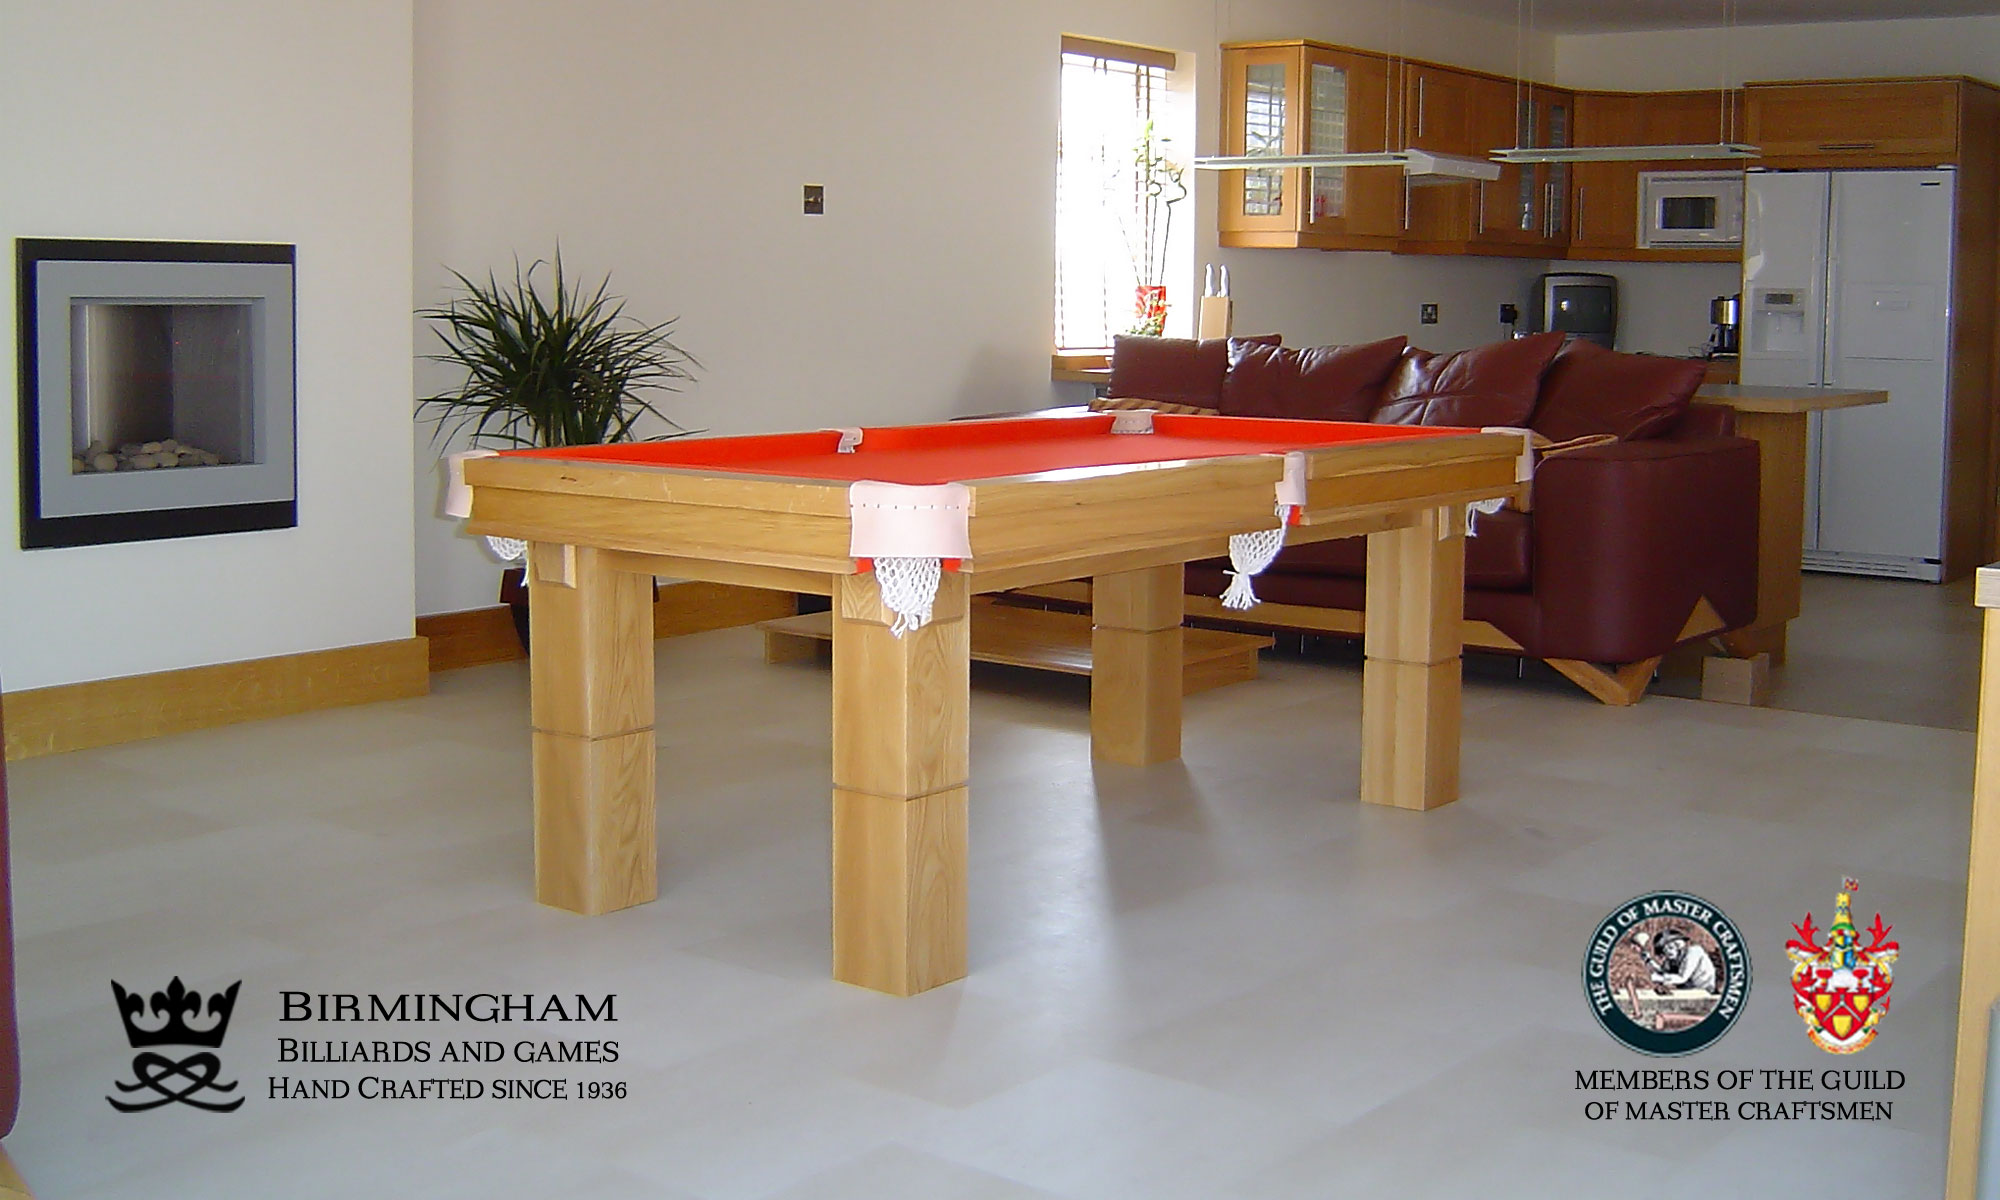 The Retro-luxury handmade pool table in light oak and olive red baize